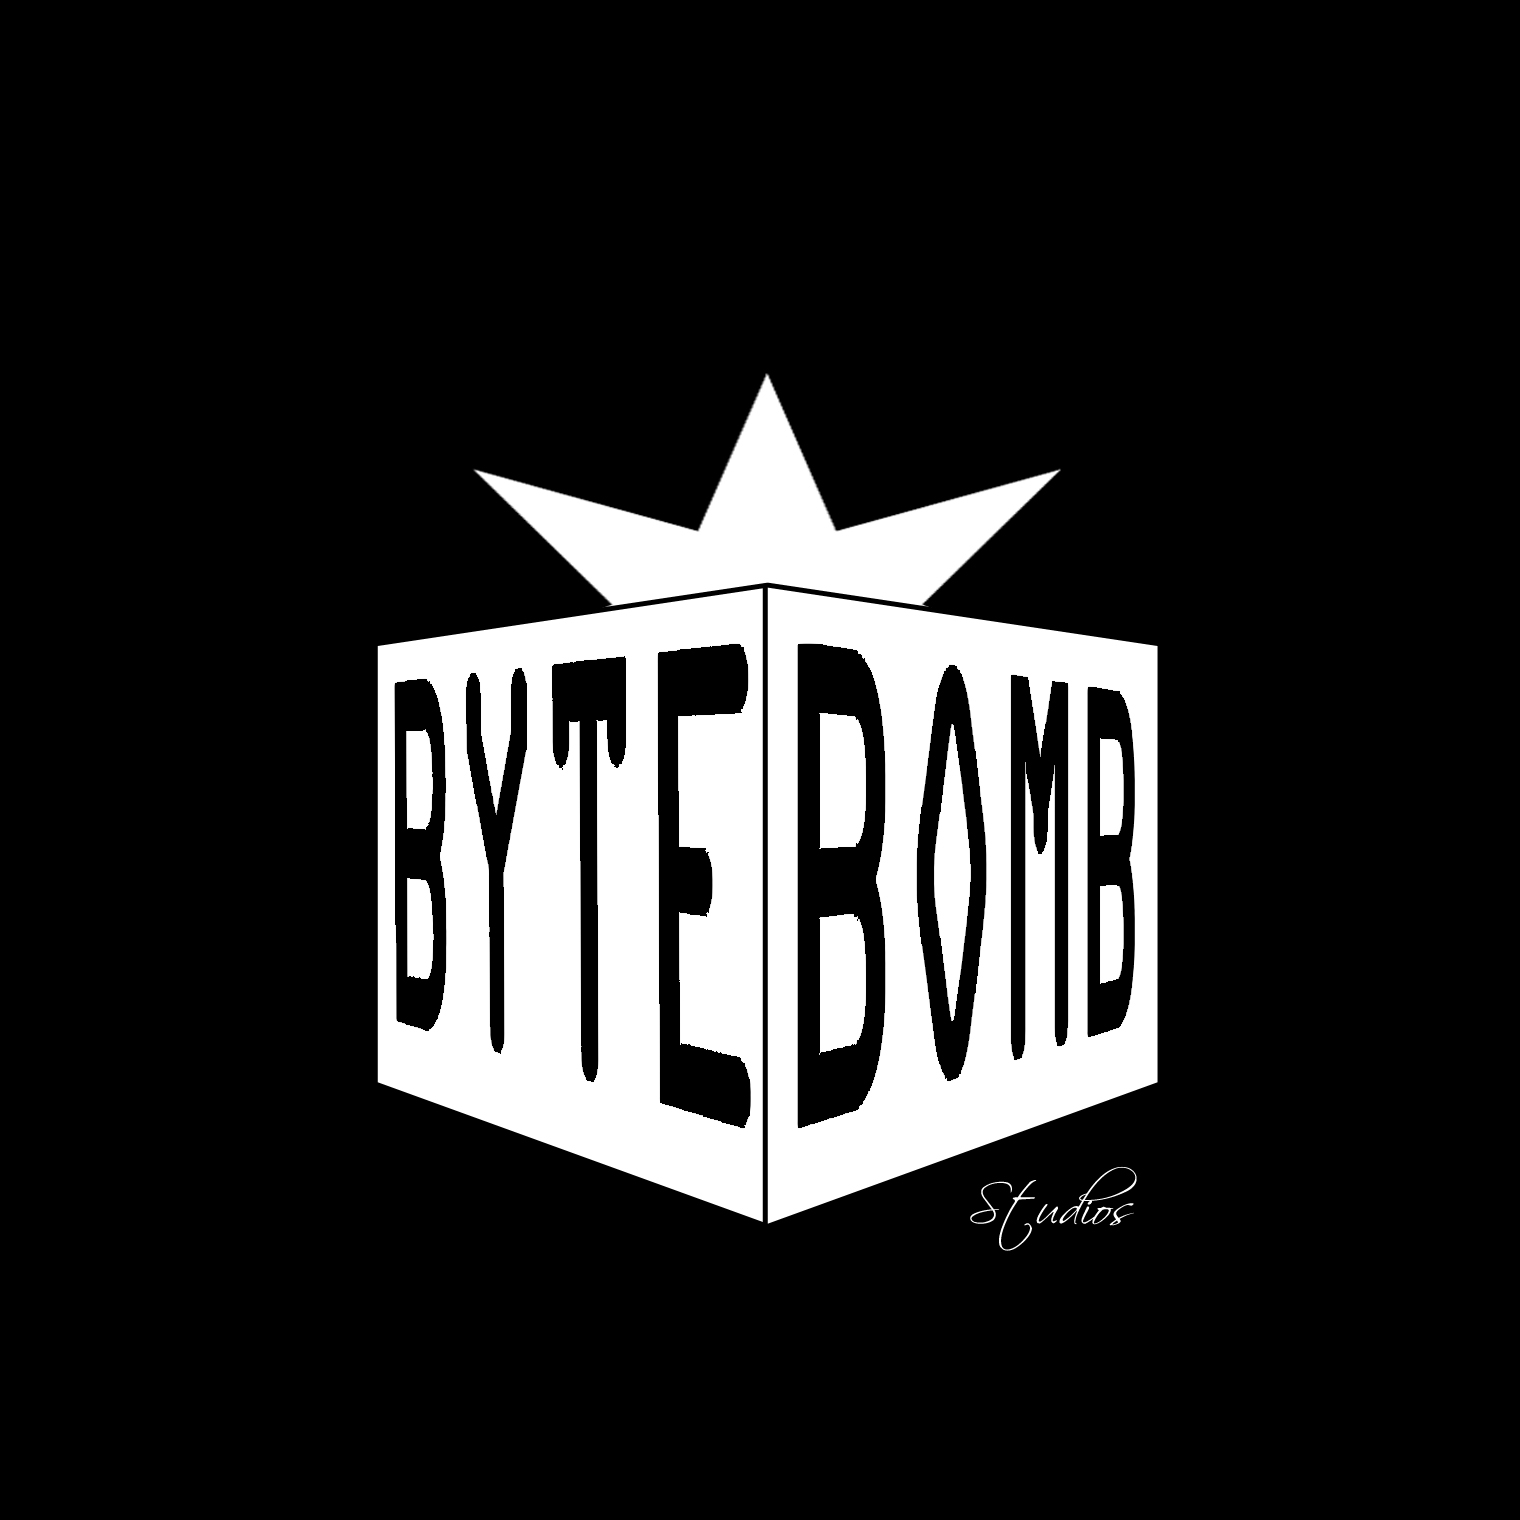 Logo Design by BrandNew - Entry No. 34 in the Logo Design Contest Captivating Logo Design for ByteBomb Studios.